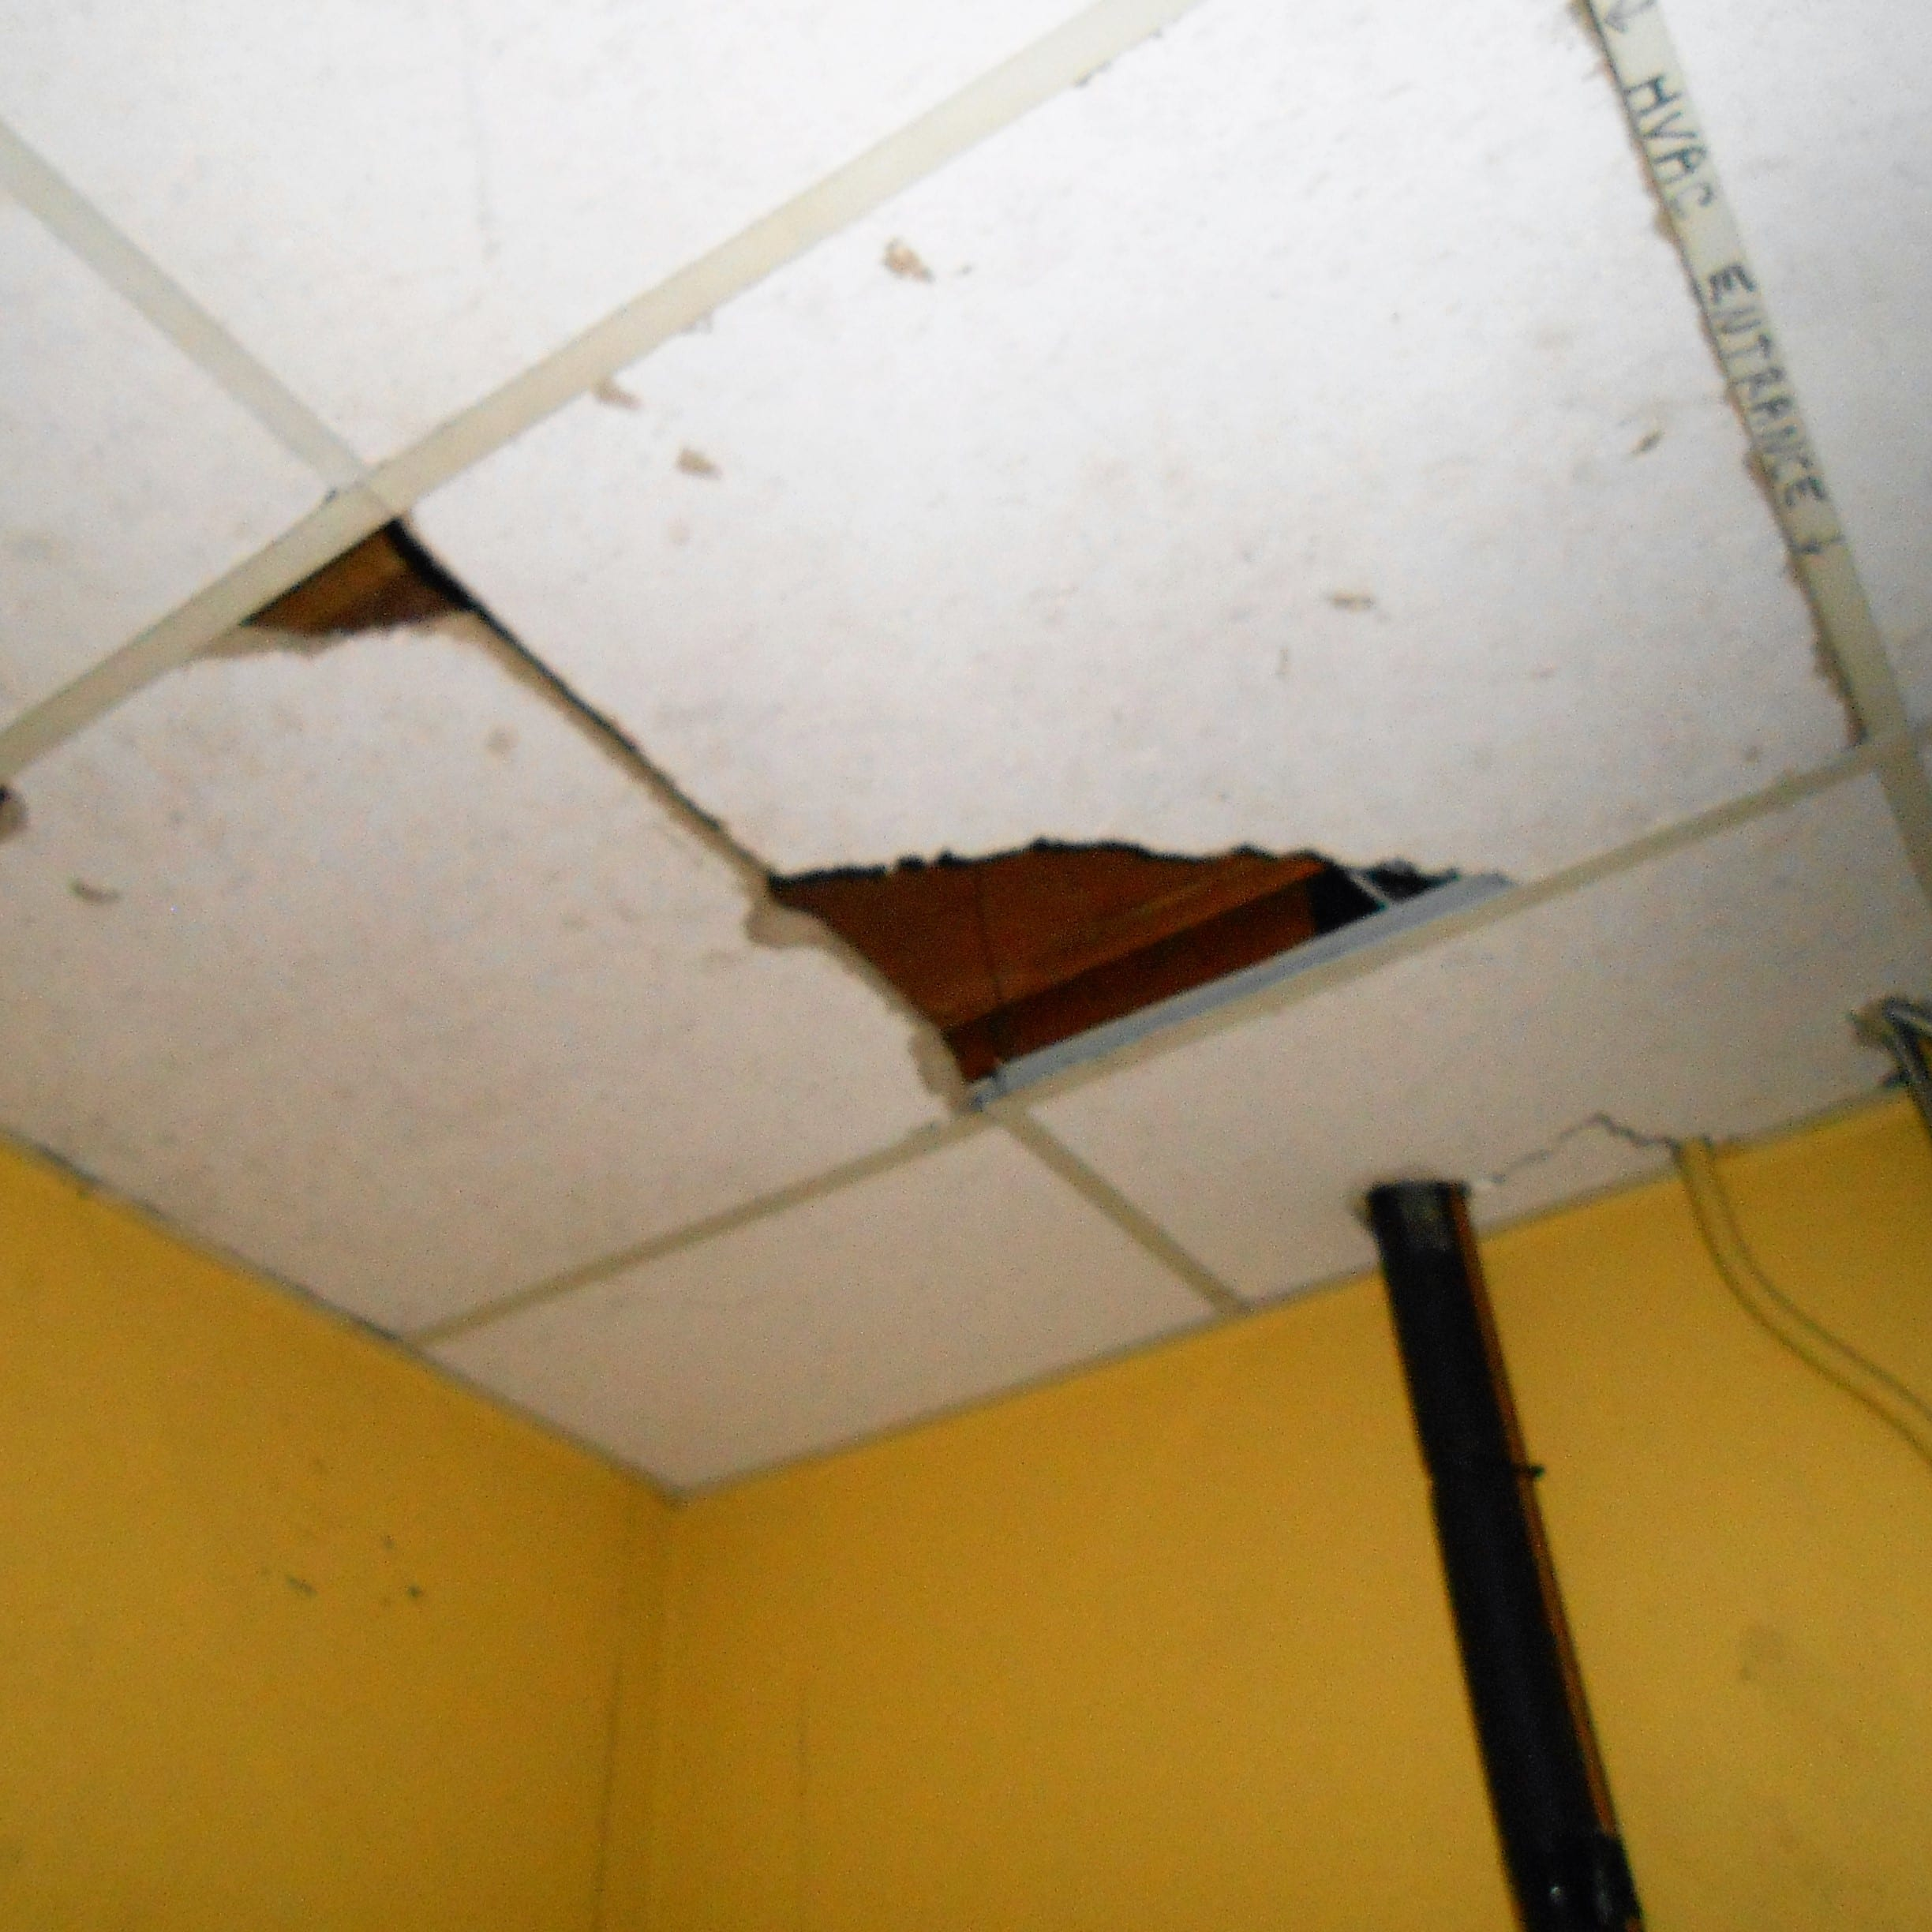 Ceiling Tiles Repair The Service Company of Virginia